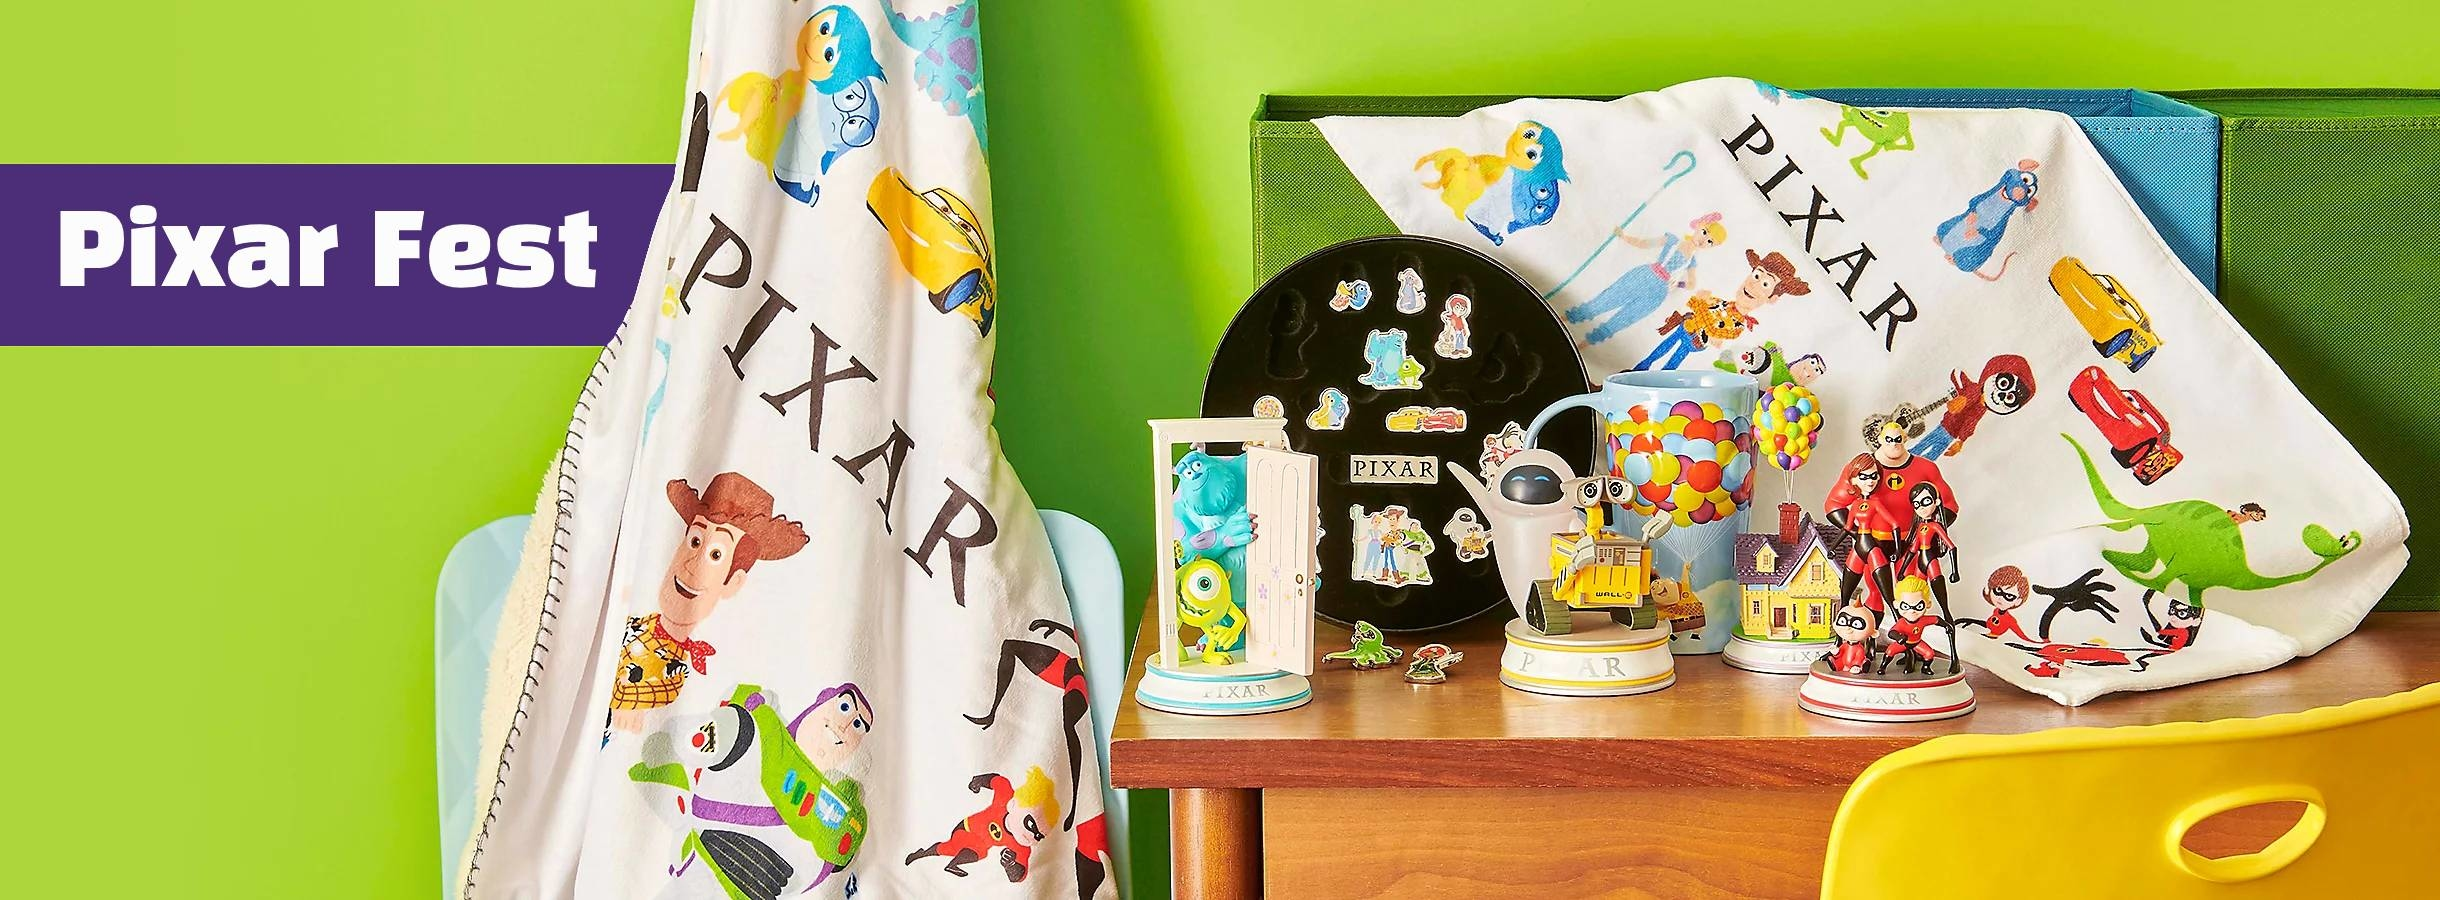 DisneyStore Japan Pixar Fest & Alien Remix 商品